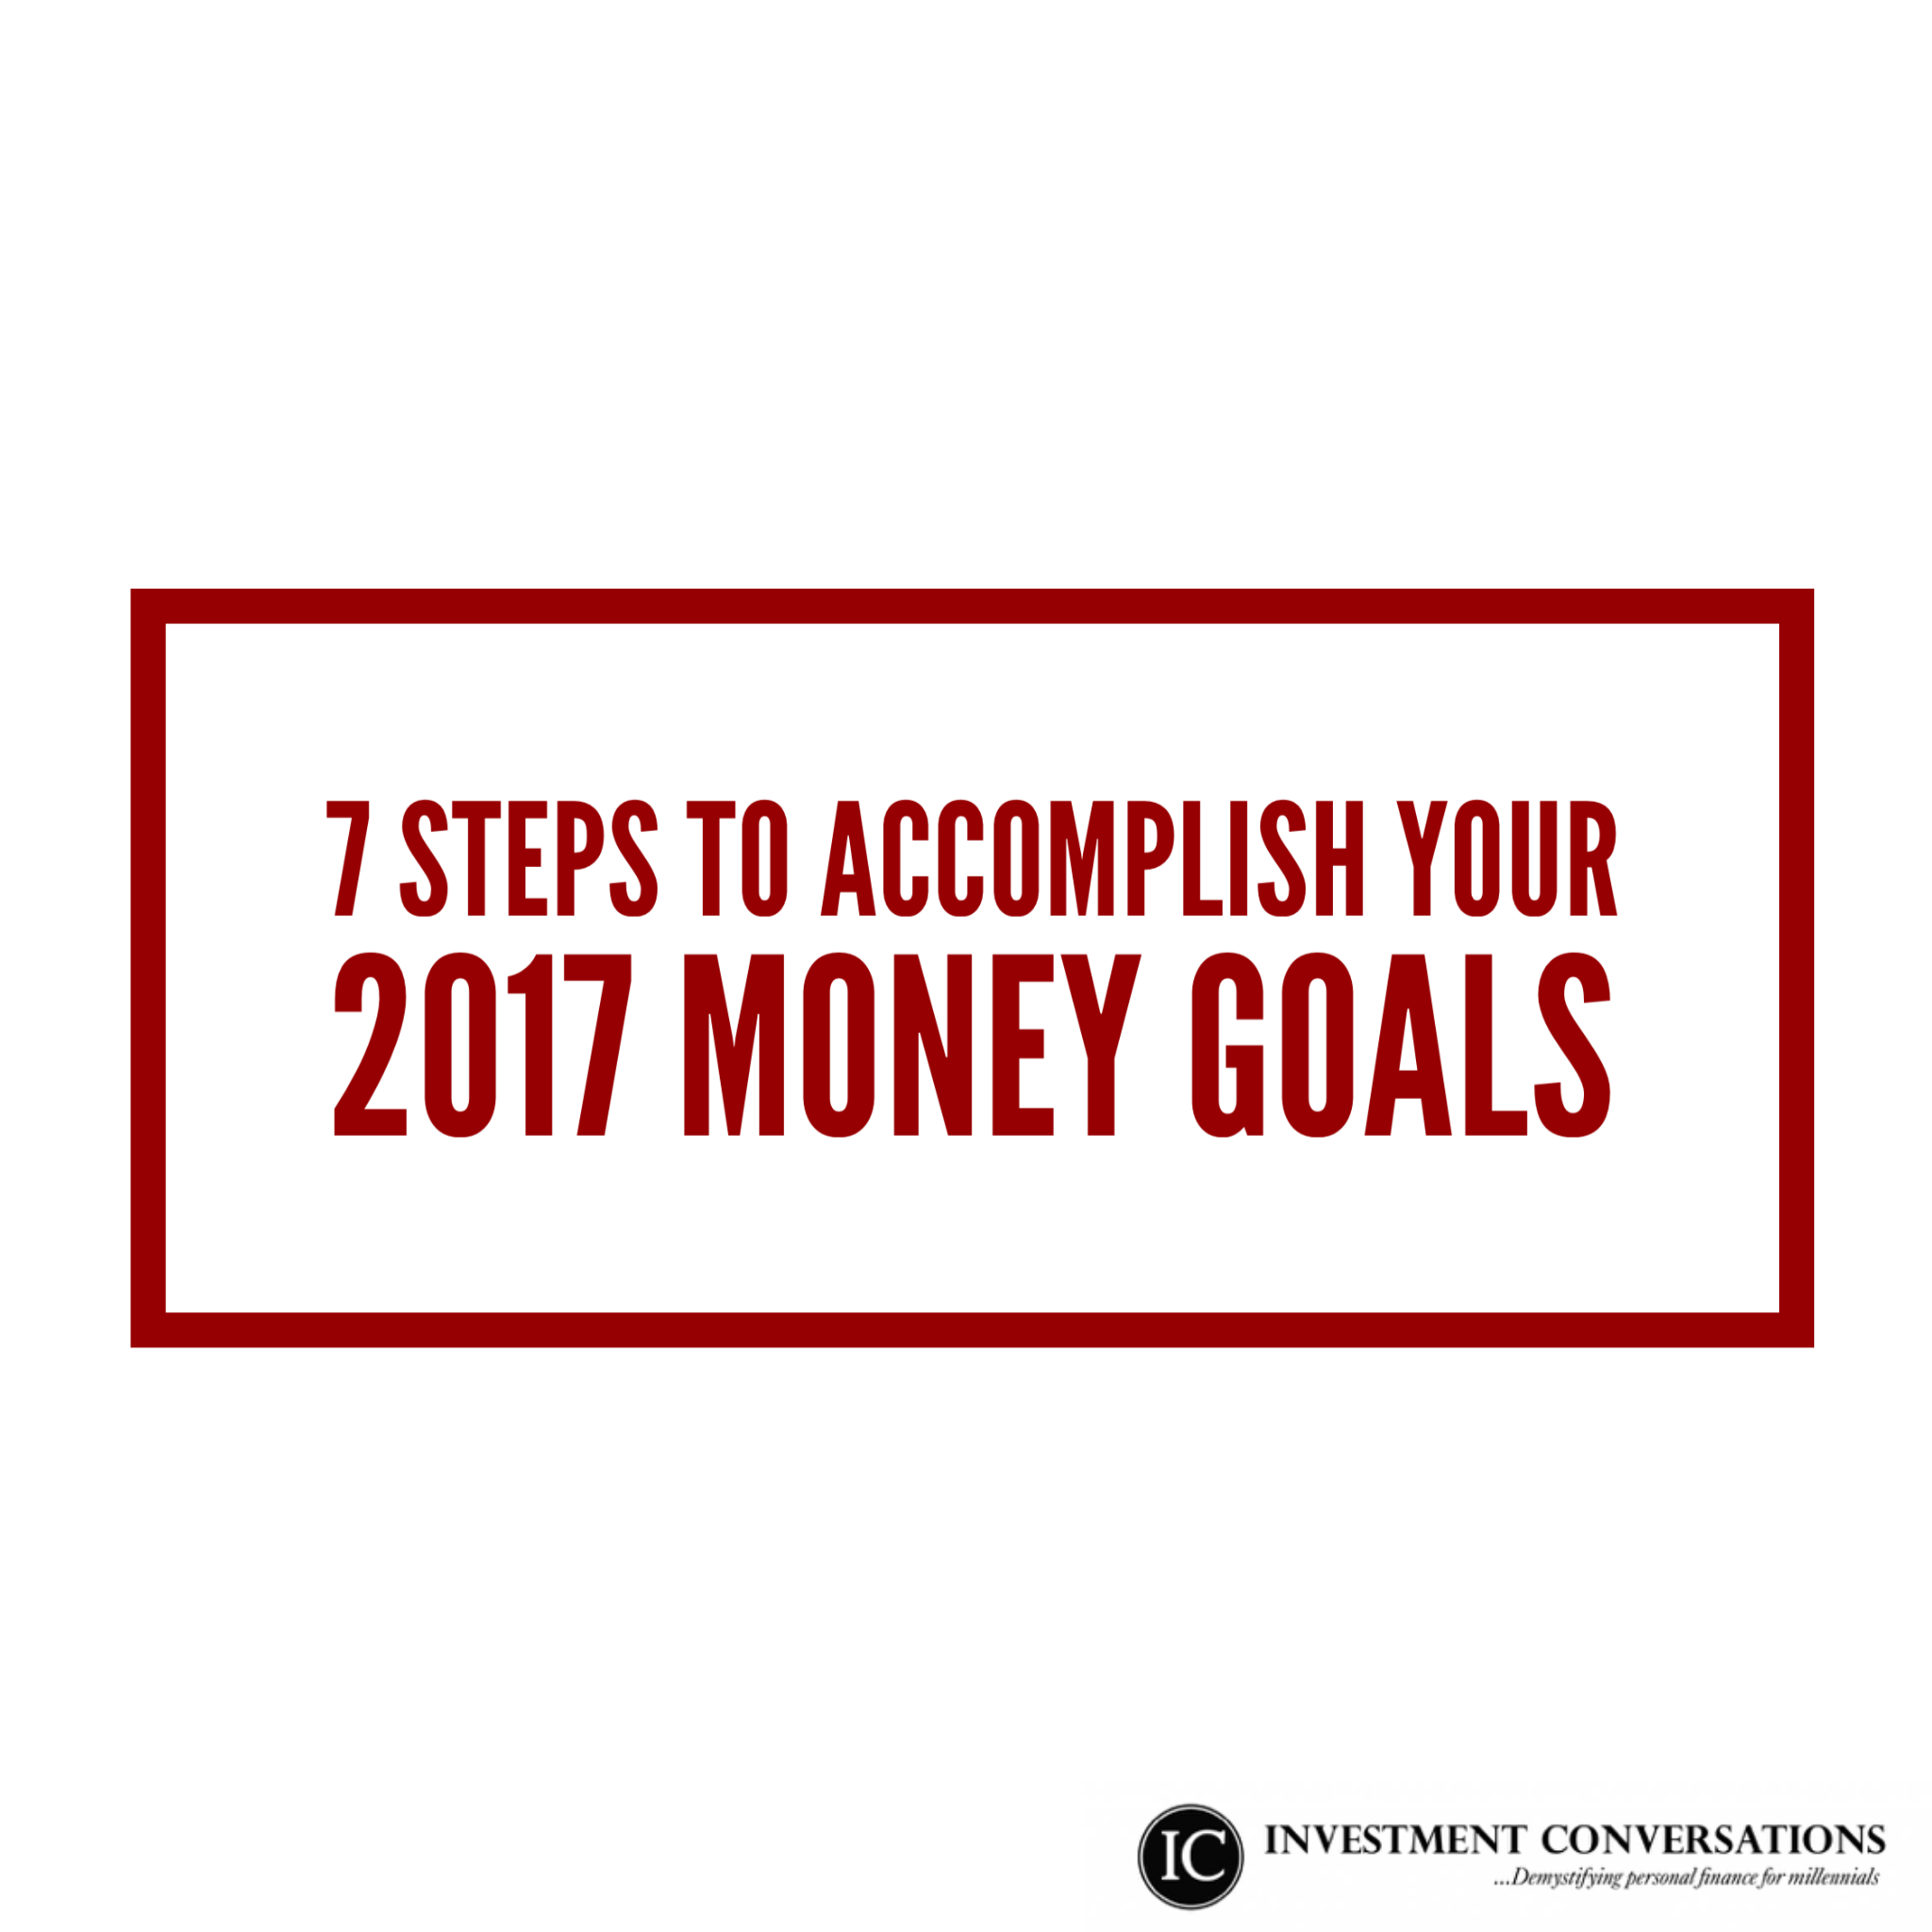 7 Steps To Accomplish Your 2017 Money Goals